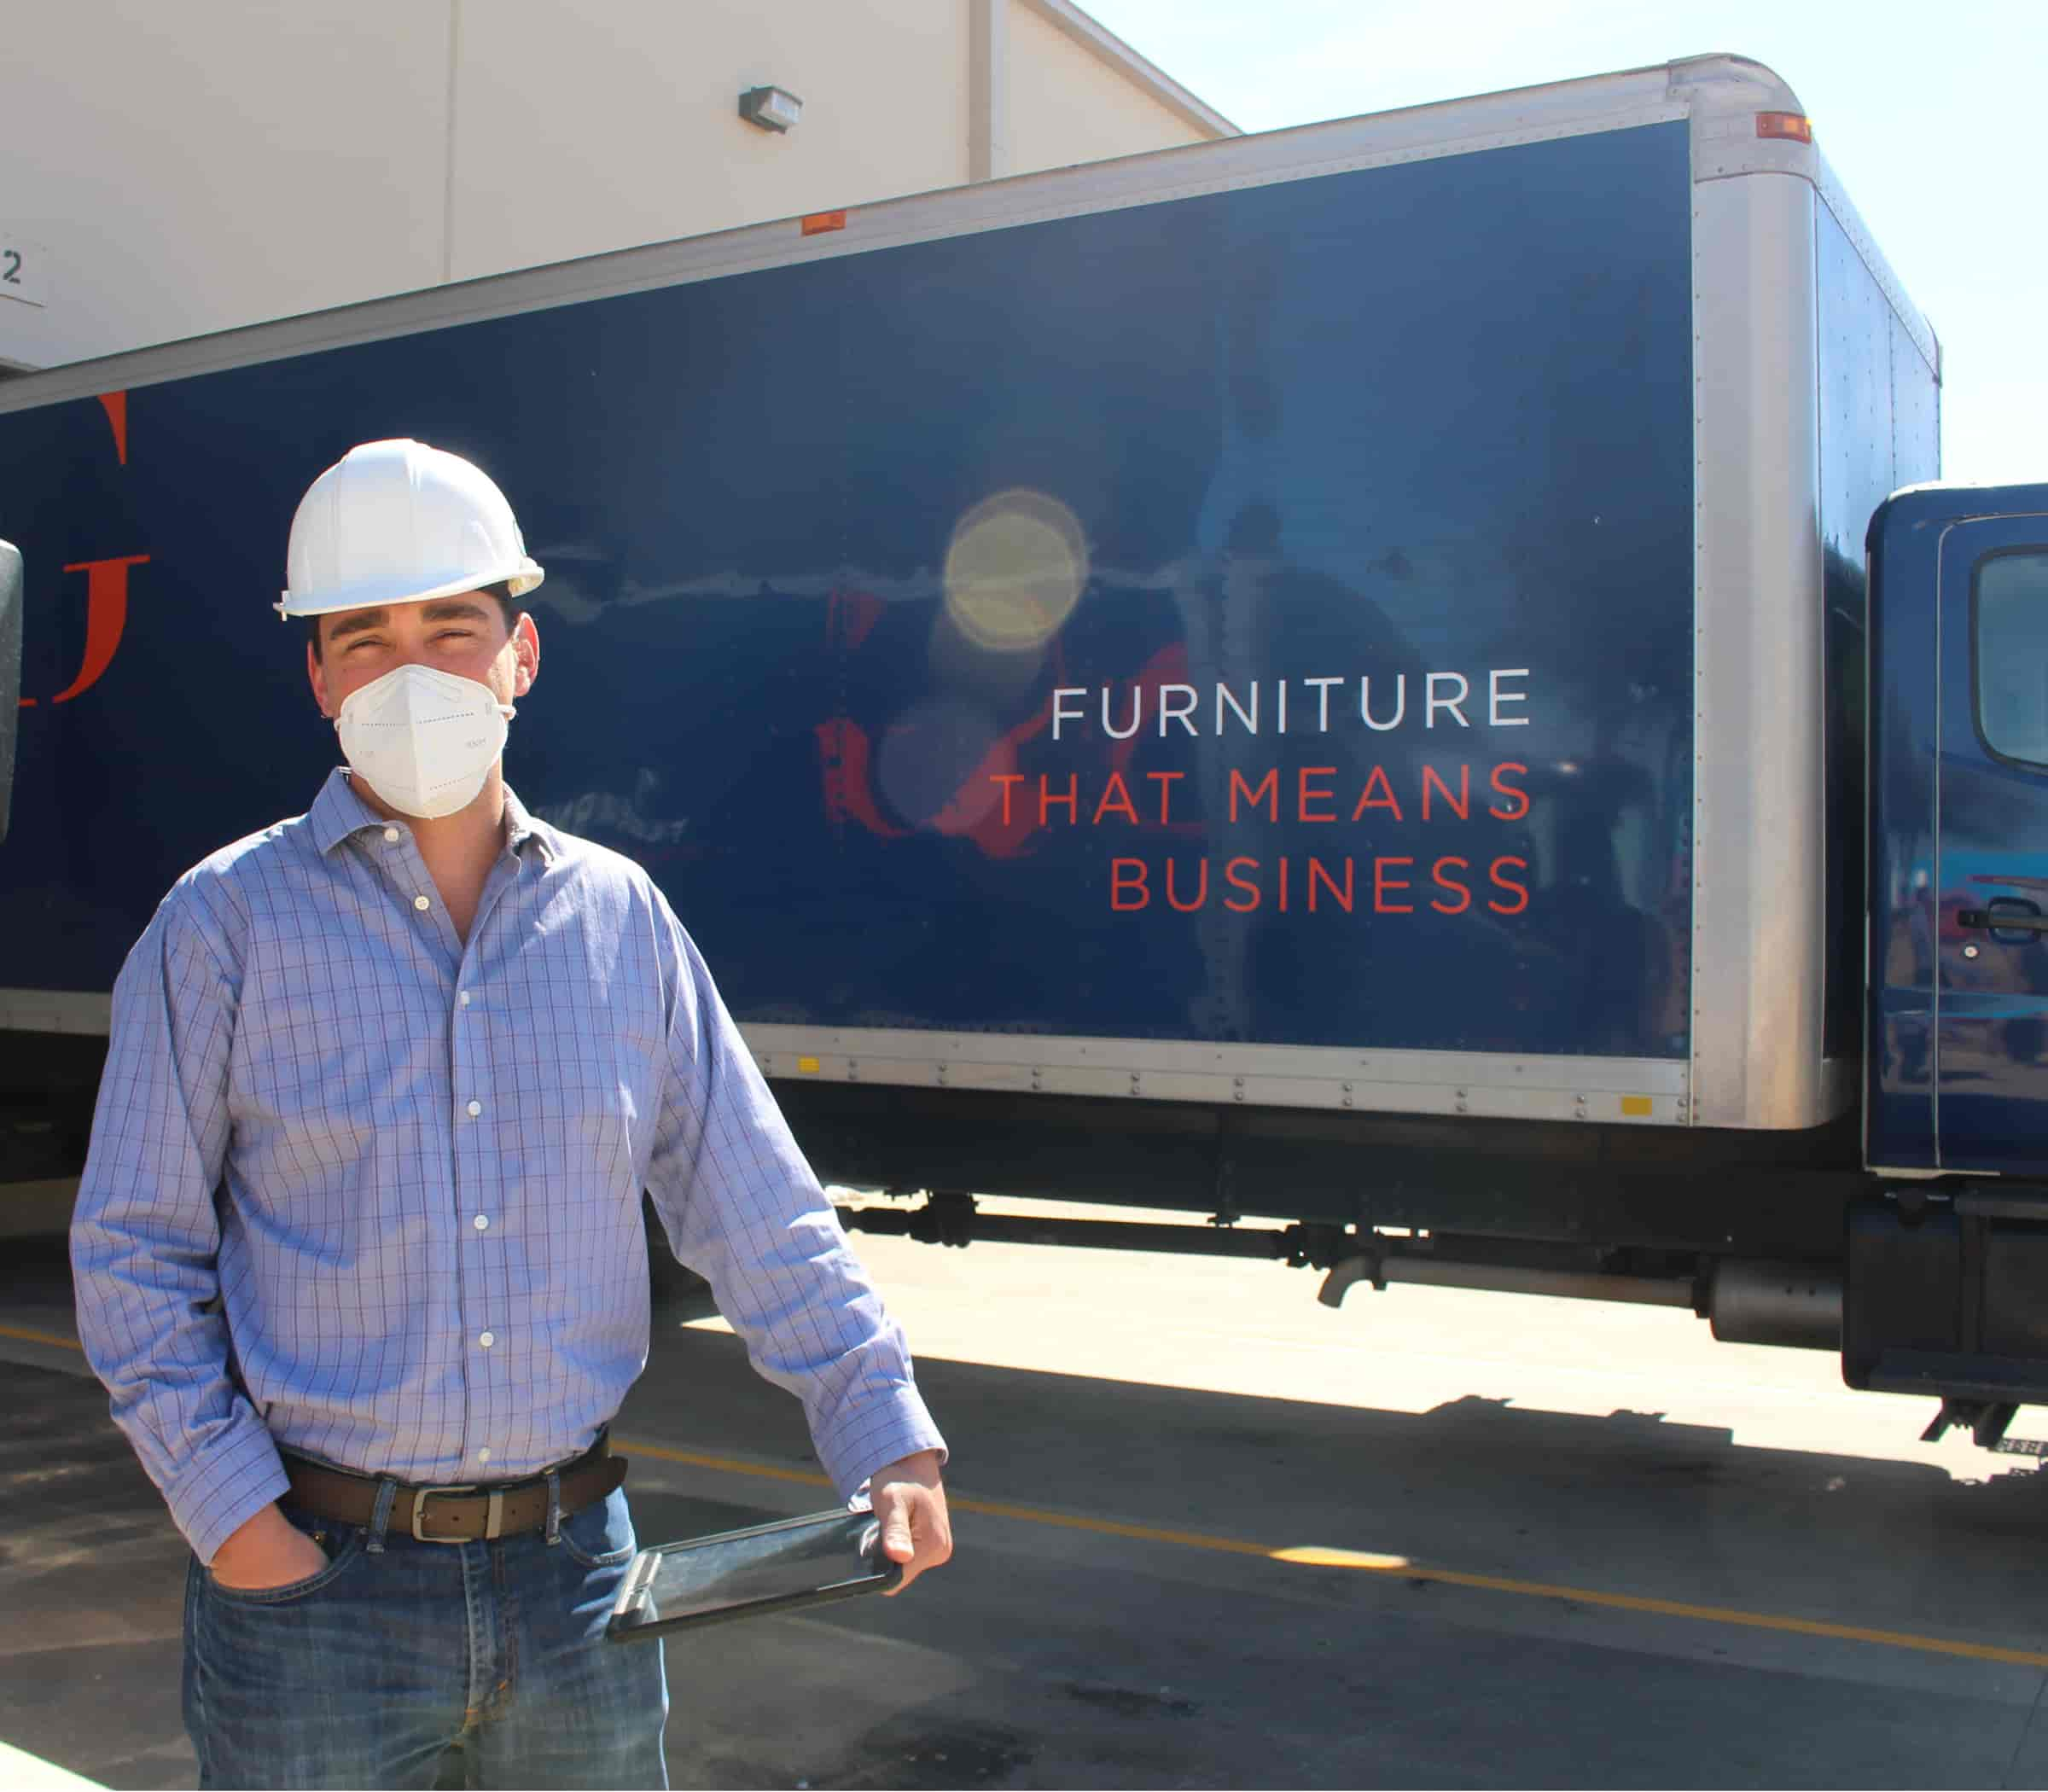 Project manager standing in front of a furniture delivery truck